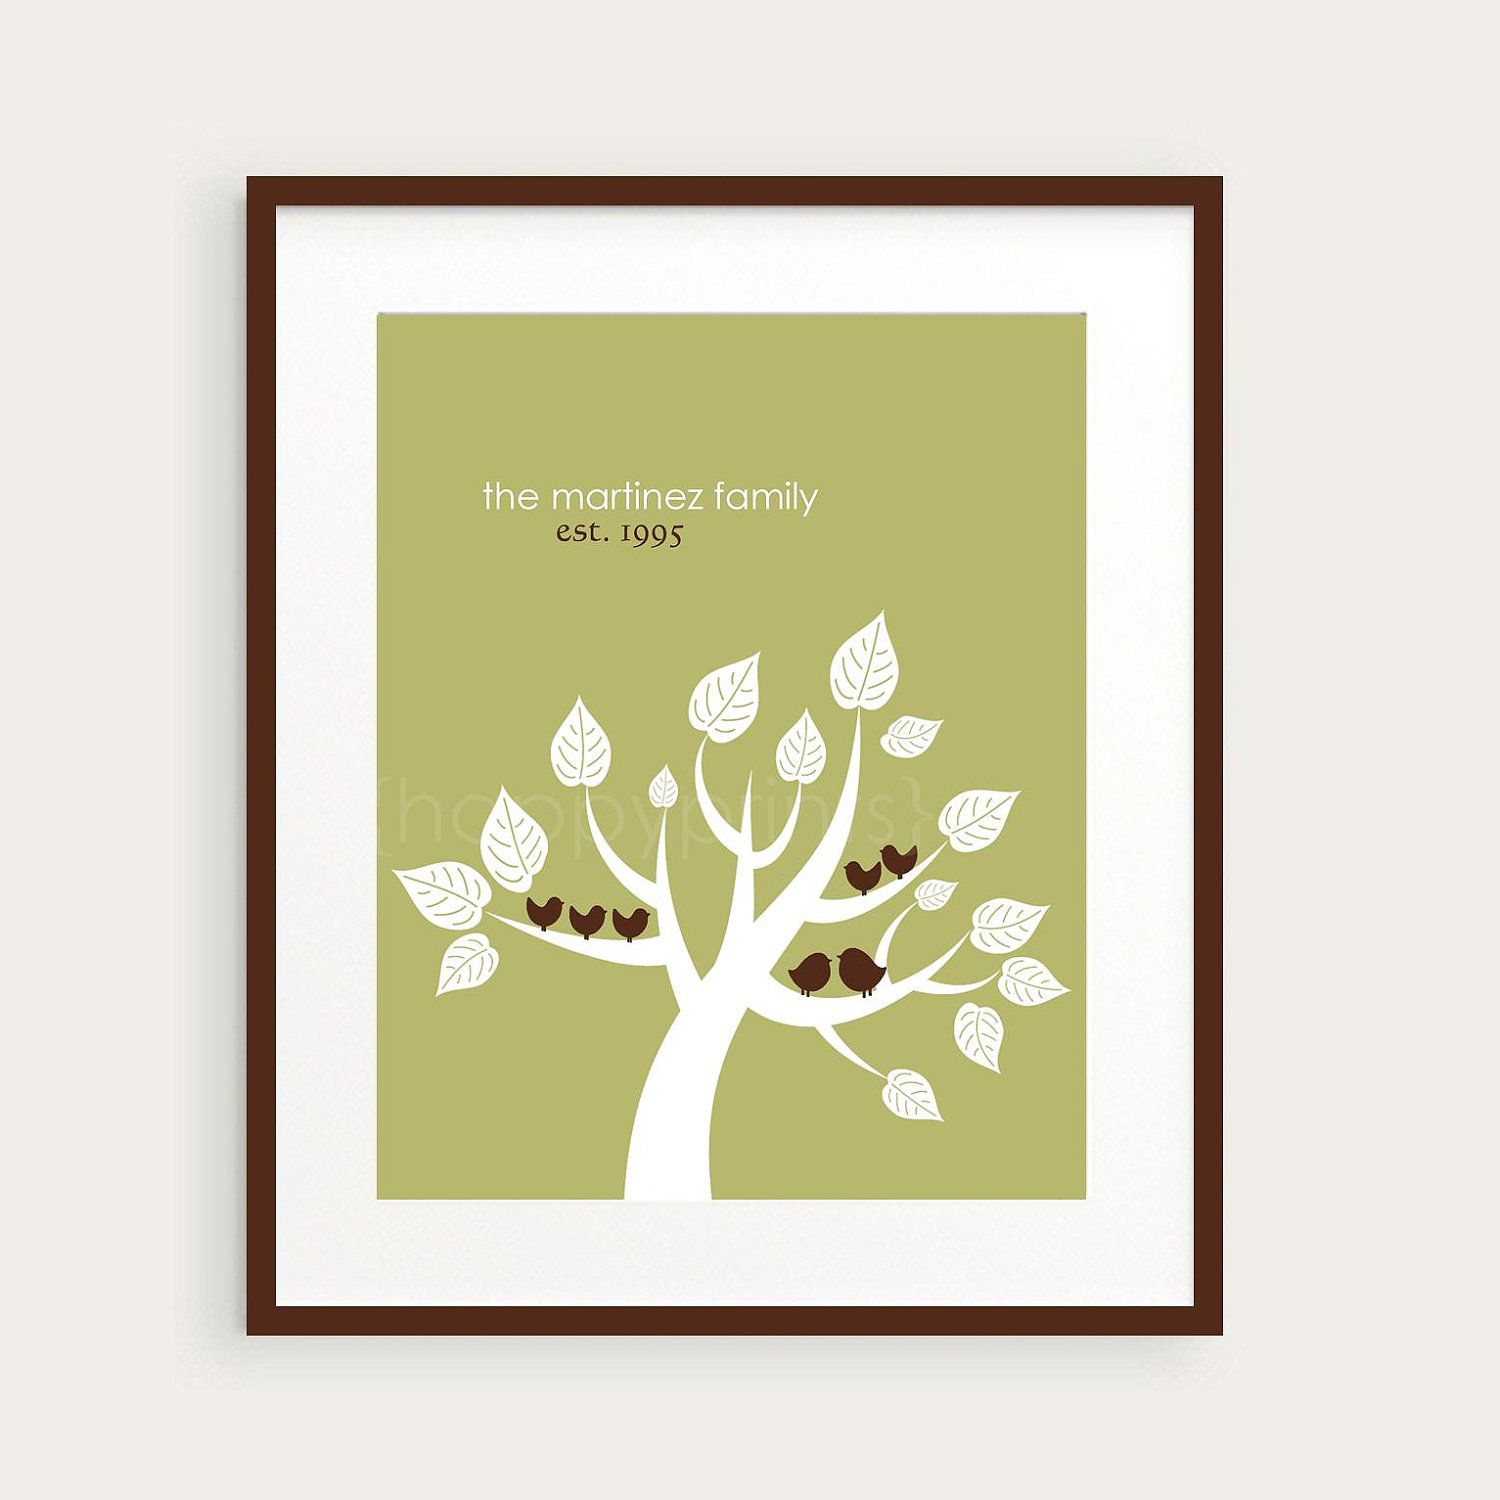 Unique Personalized Family Tree Wall Art Gift - The Wall Art ...